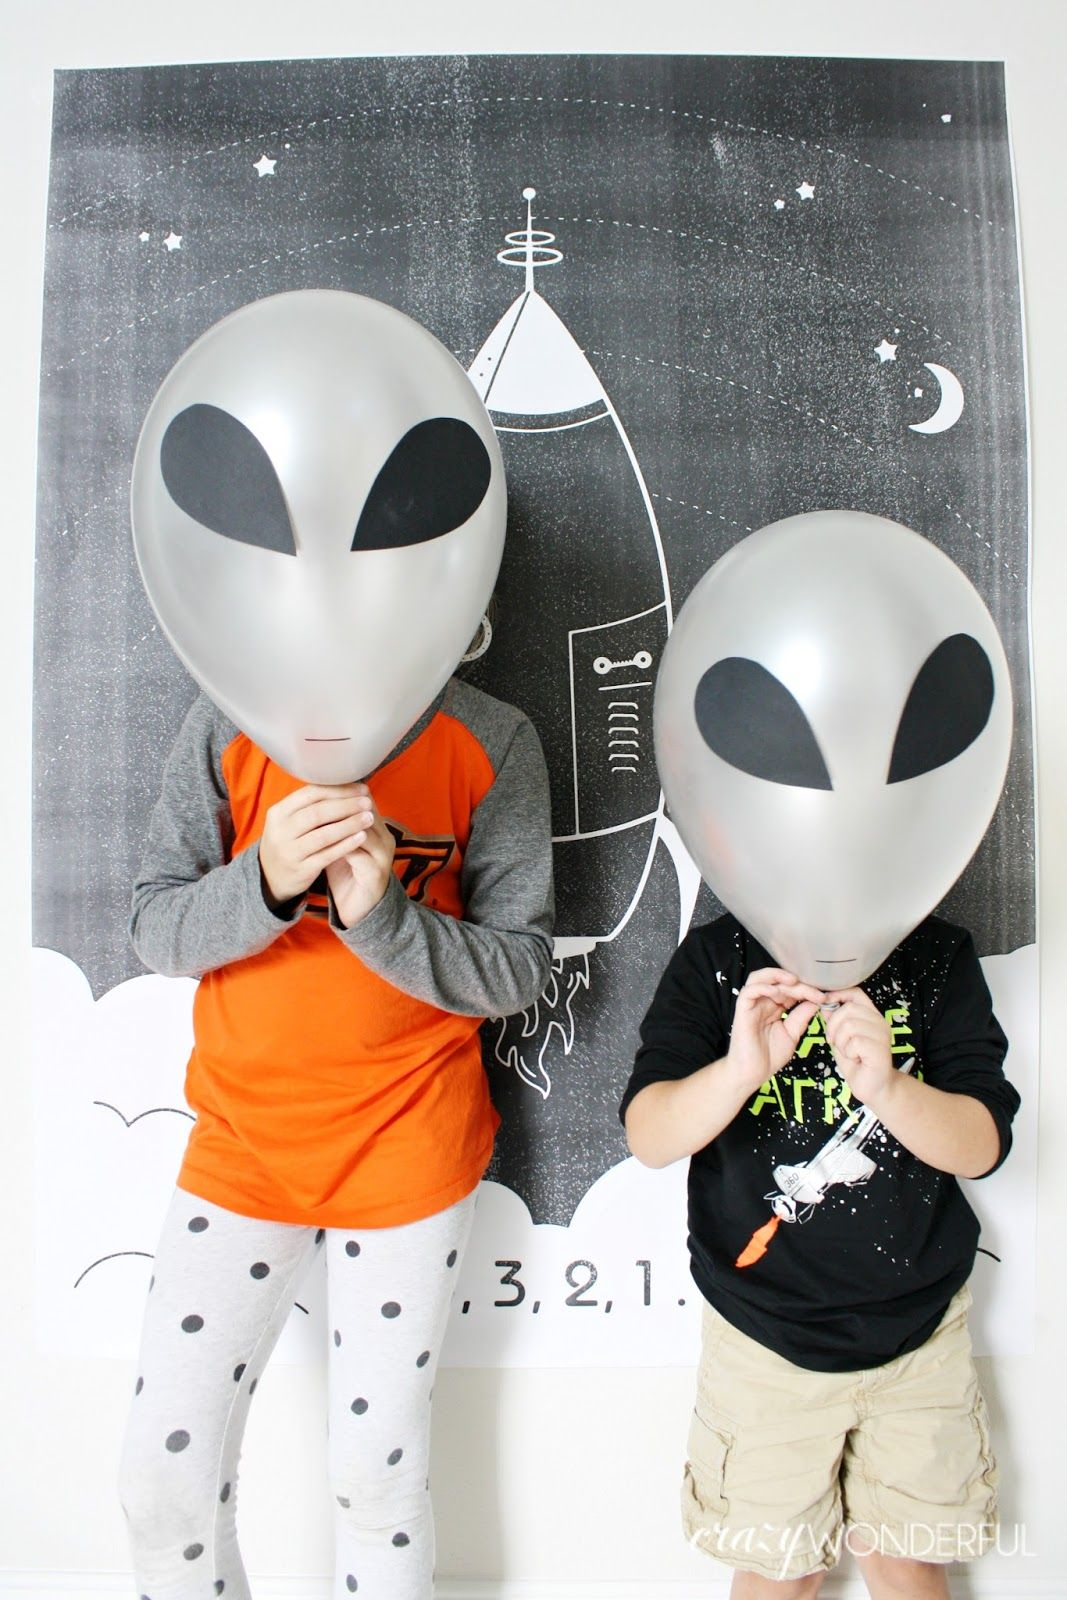 space theme birthday party - Crazy Wonderful #outerspaceparty